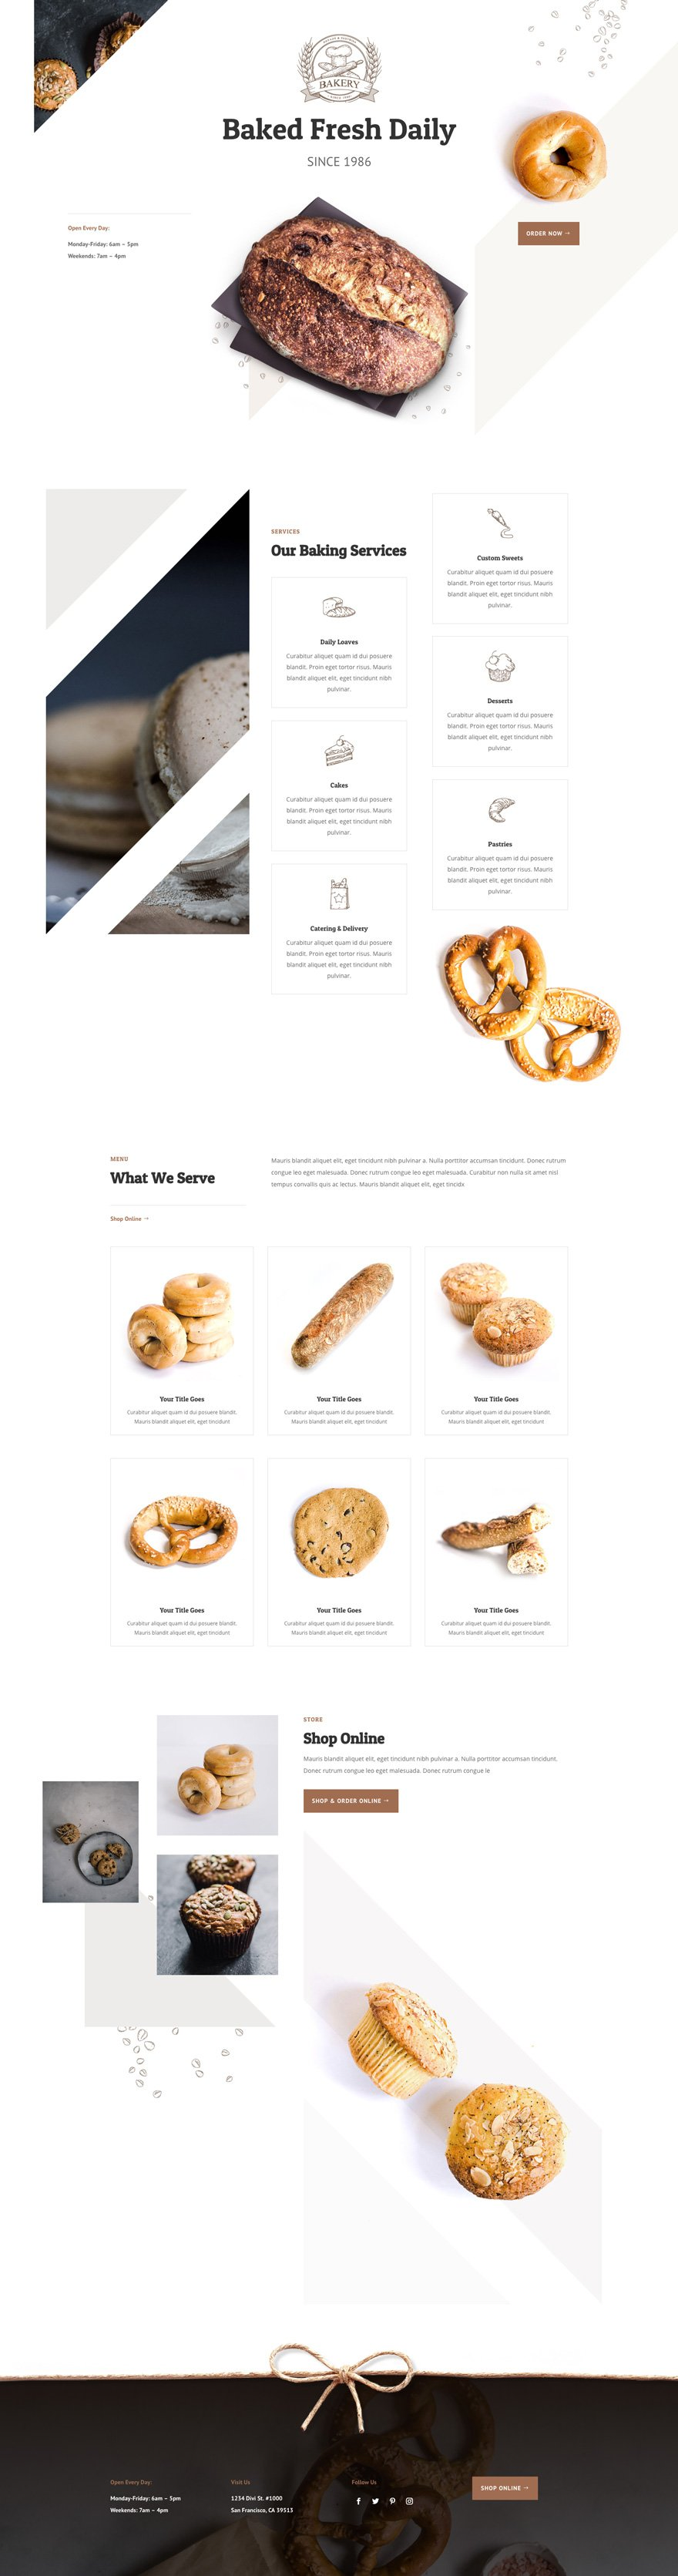 divi bakery layout pack